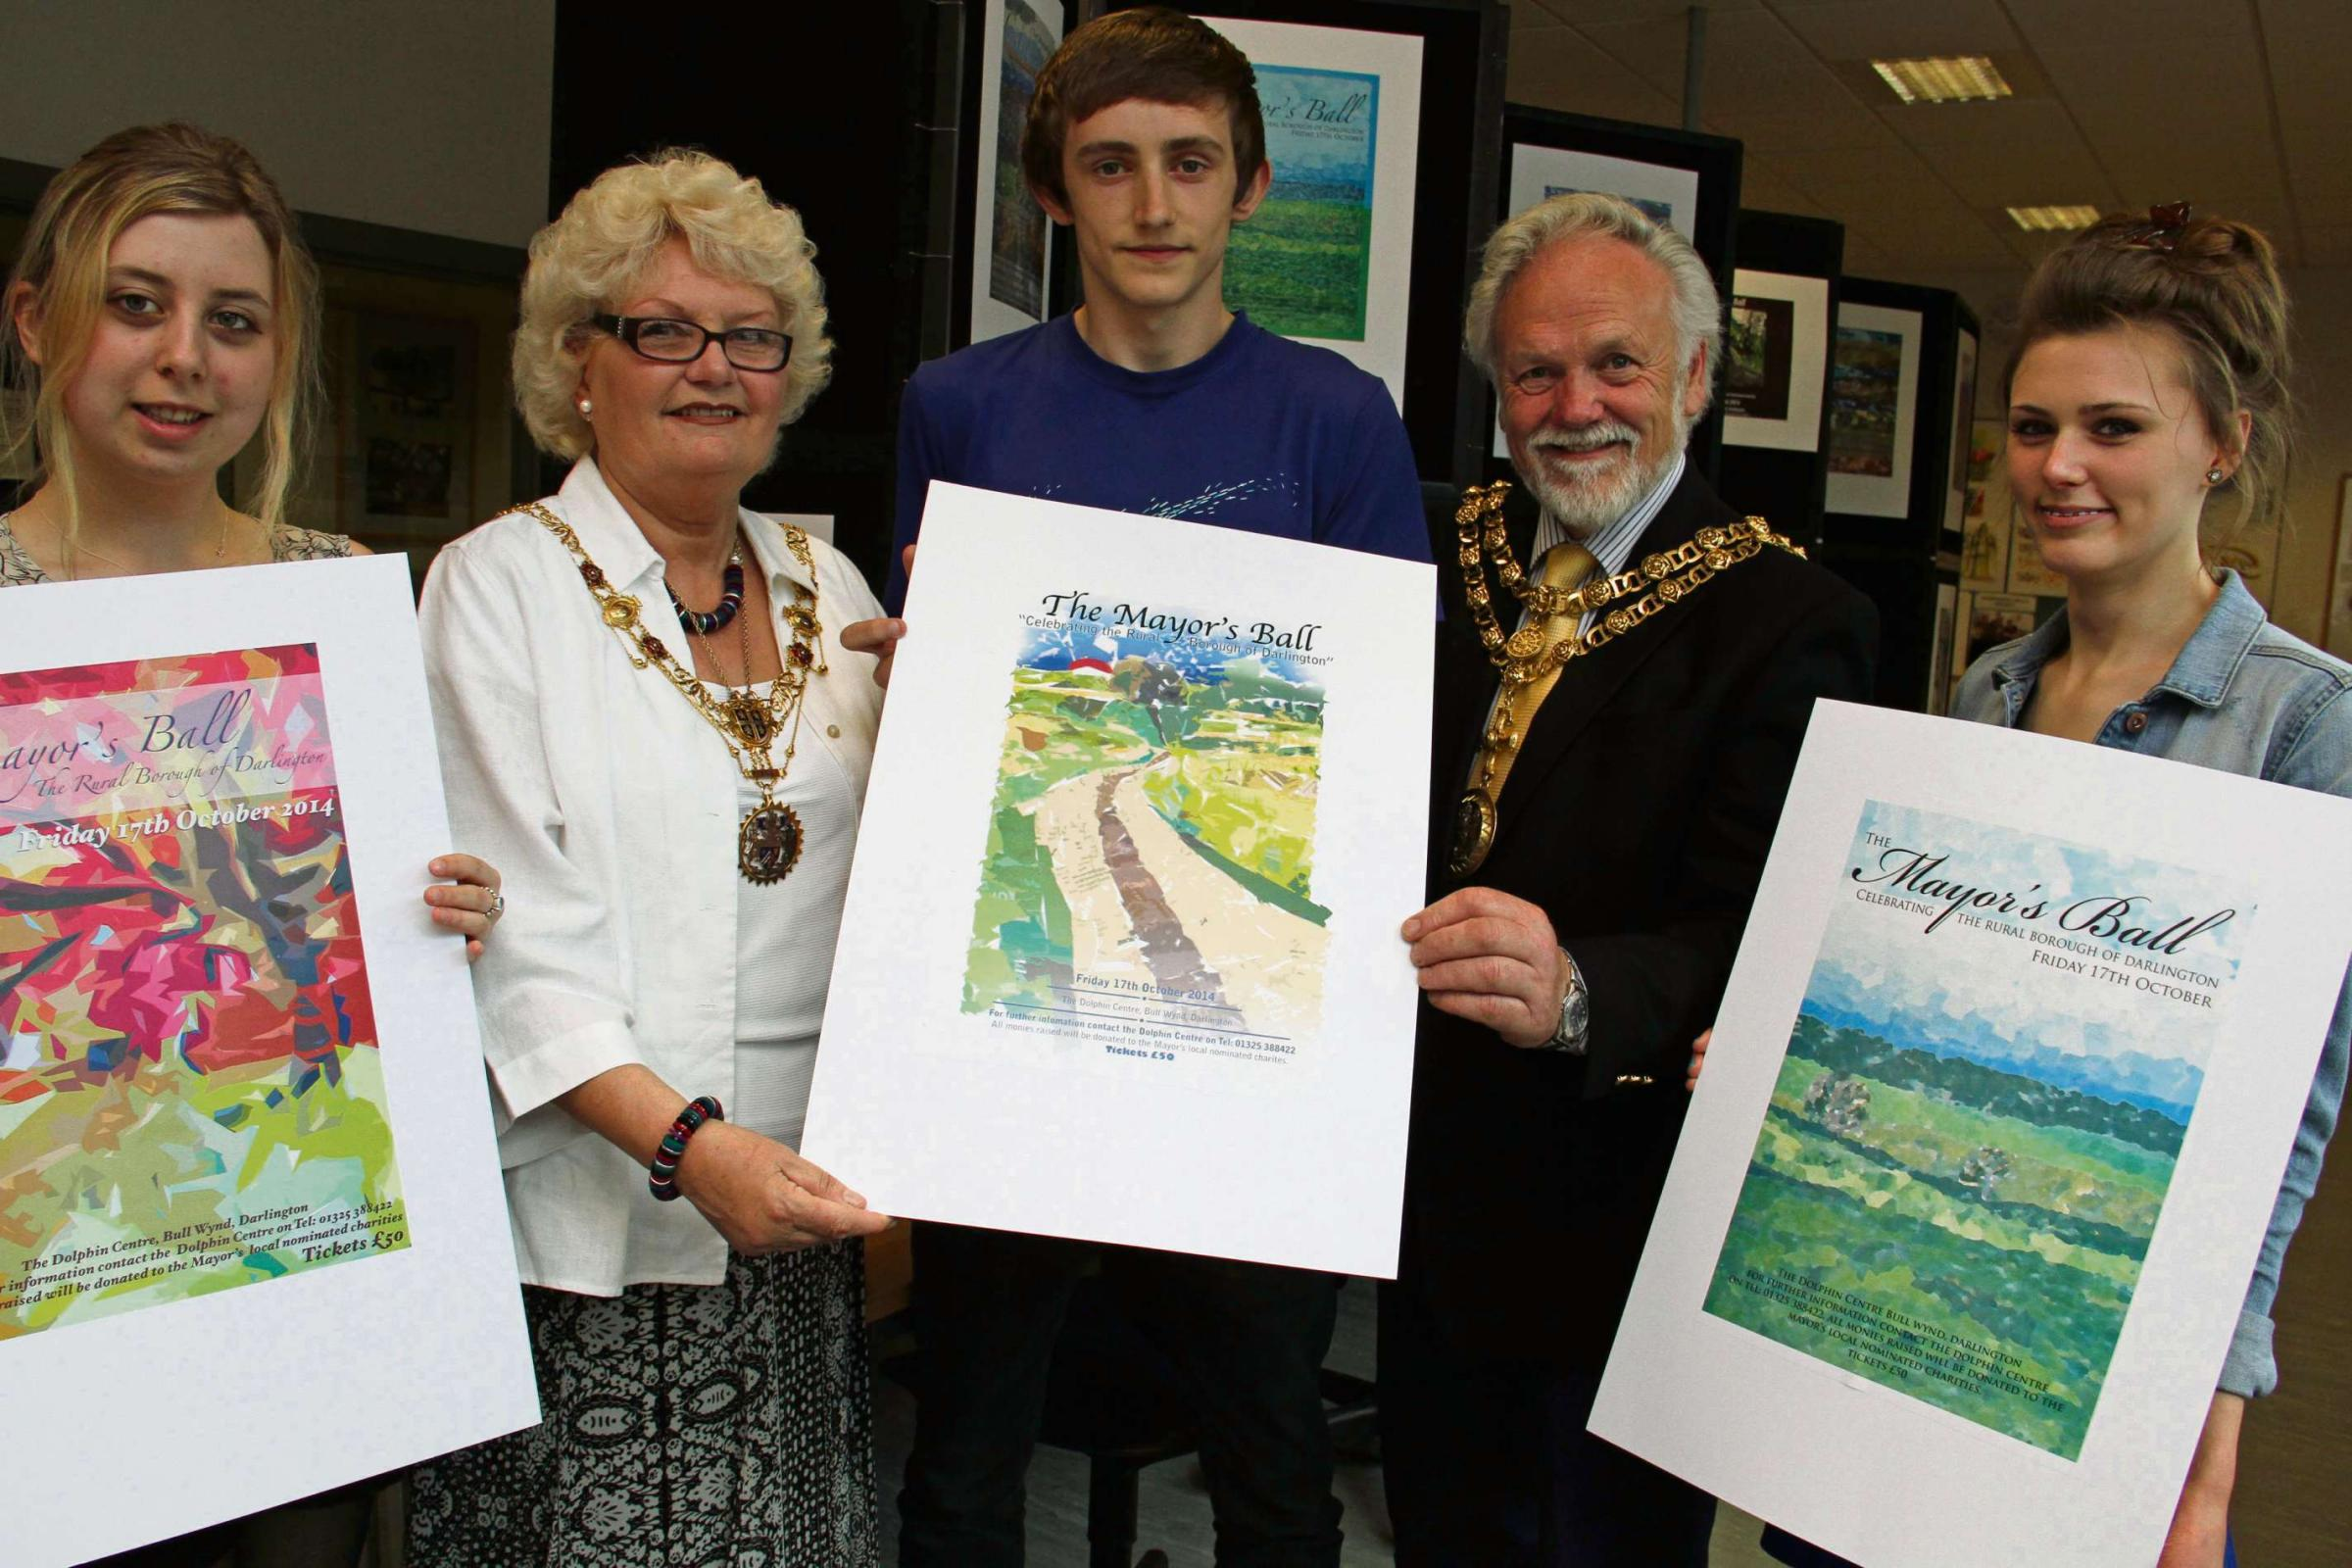 WINNING DESIGNS: Students exhibit their winning designs. From left, Ashleigh McGargle, Darlington mayoress Ruth Lee, James Allinson, mayor Gerald Lee, and Amber Young